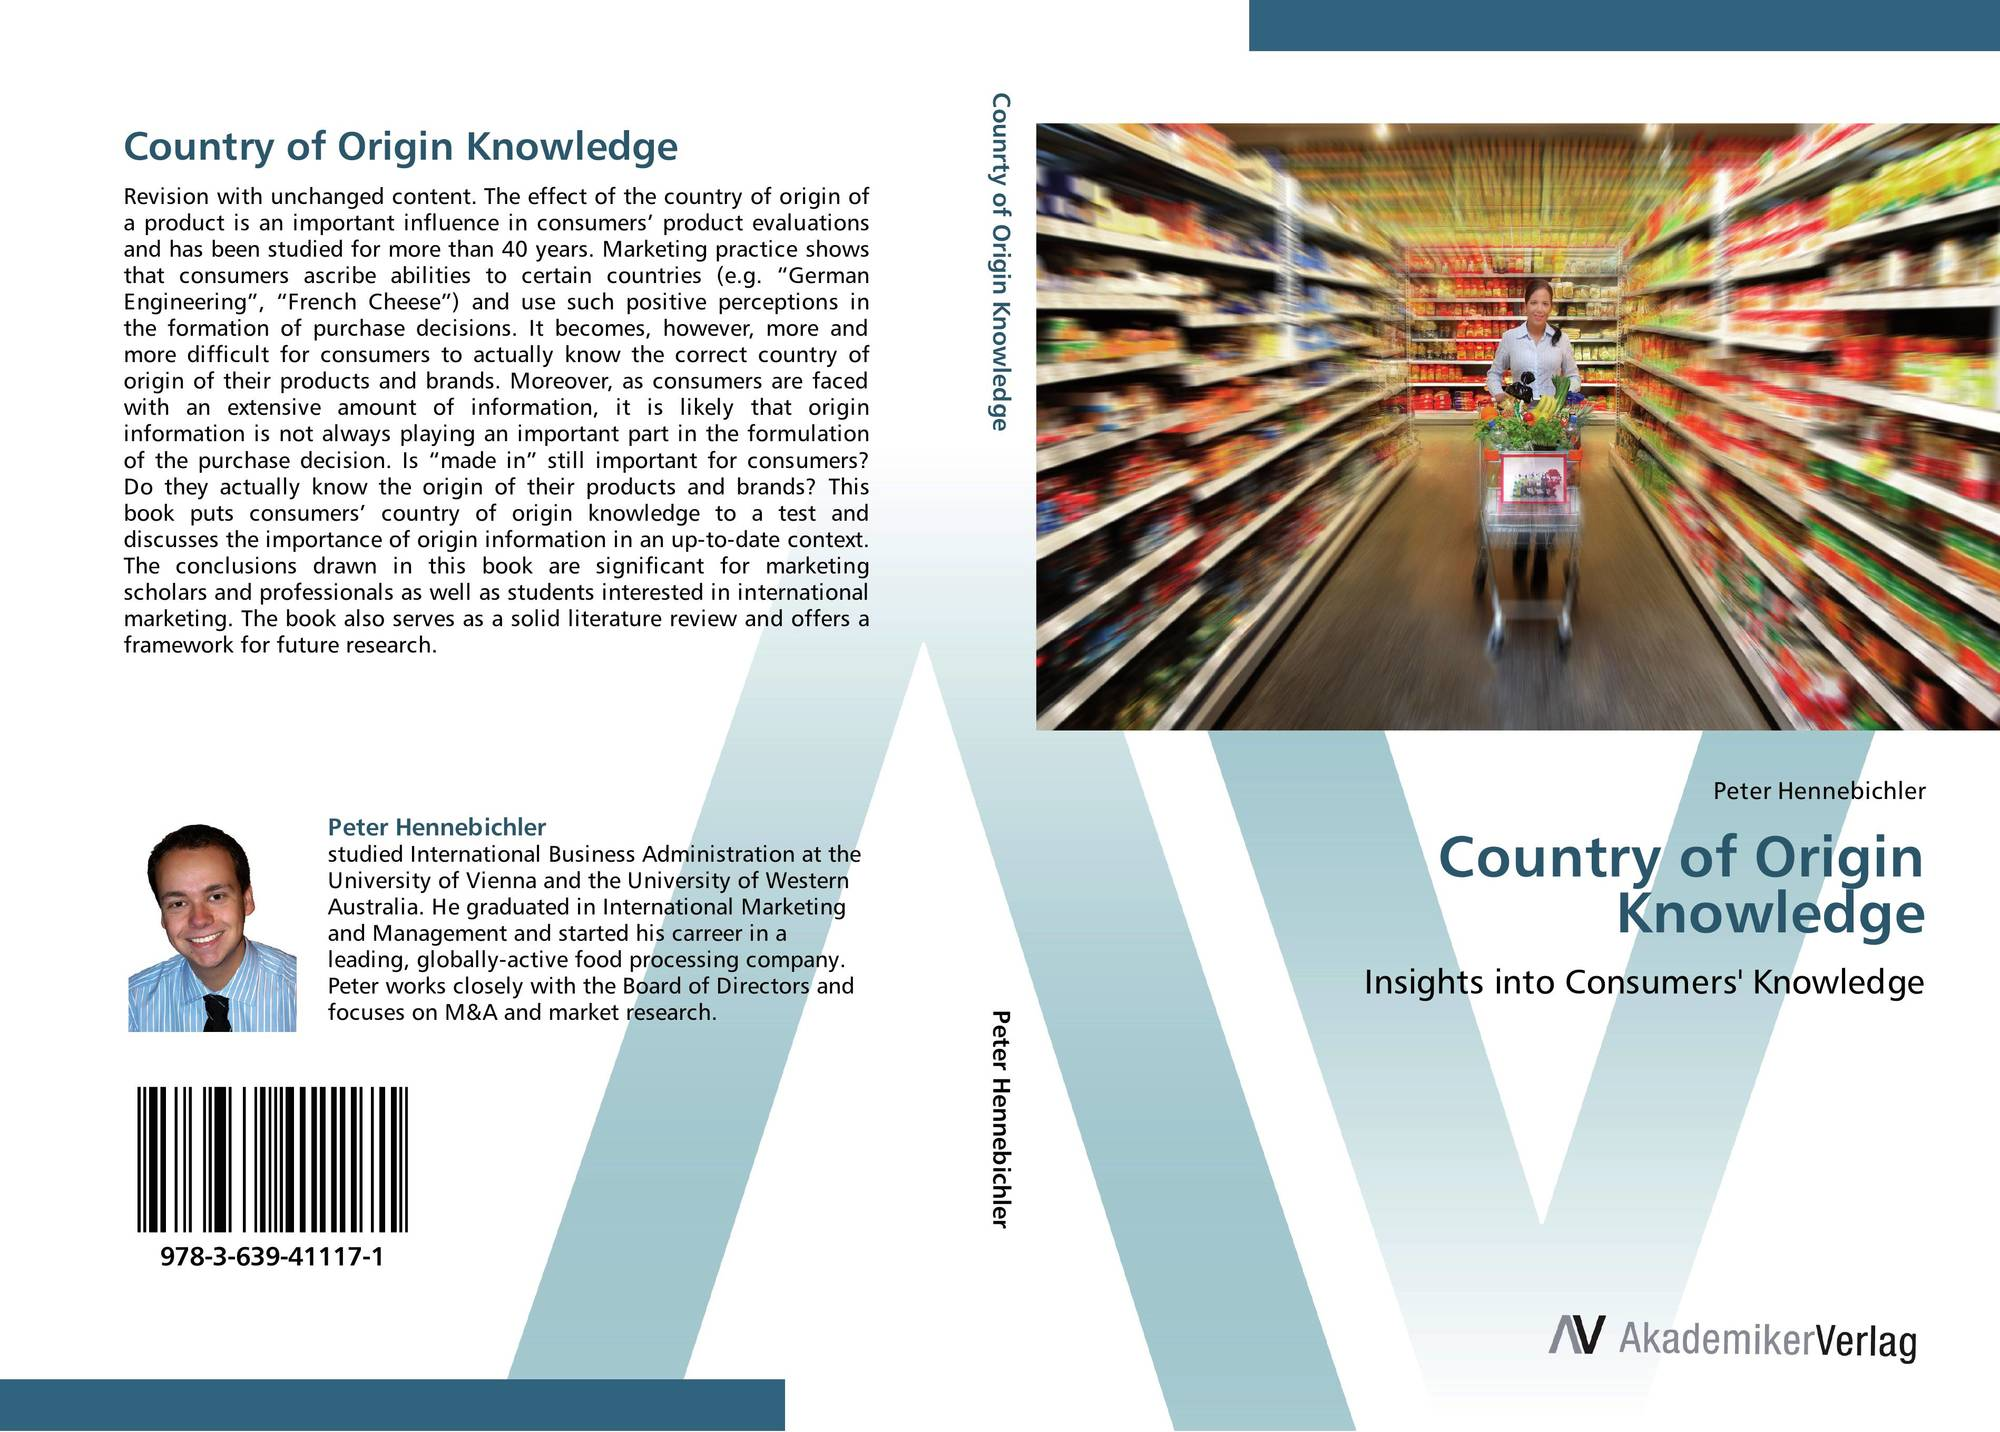 an analysis of scholars in country of origin Said's analysis made it possible for scholars to deconstruct literary and historical texts in order to understand how they reflected and reinforced the imperialist project unlike previous studies that focused on the economic or political logics of colonialism, said drew attention to the relationship between knowledge and power.